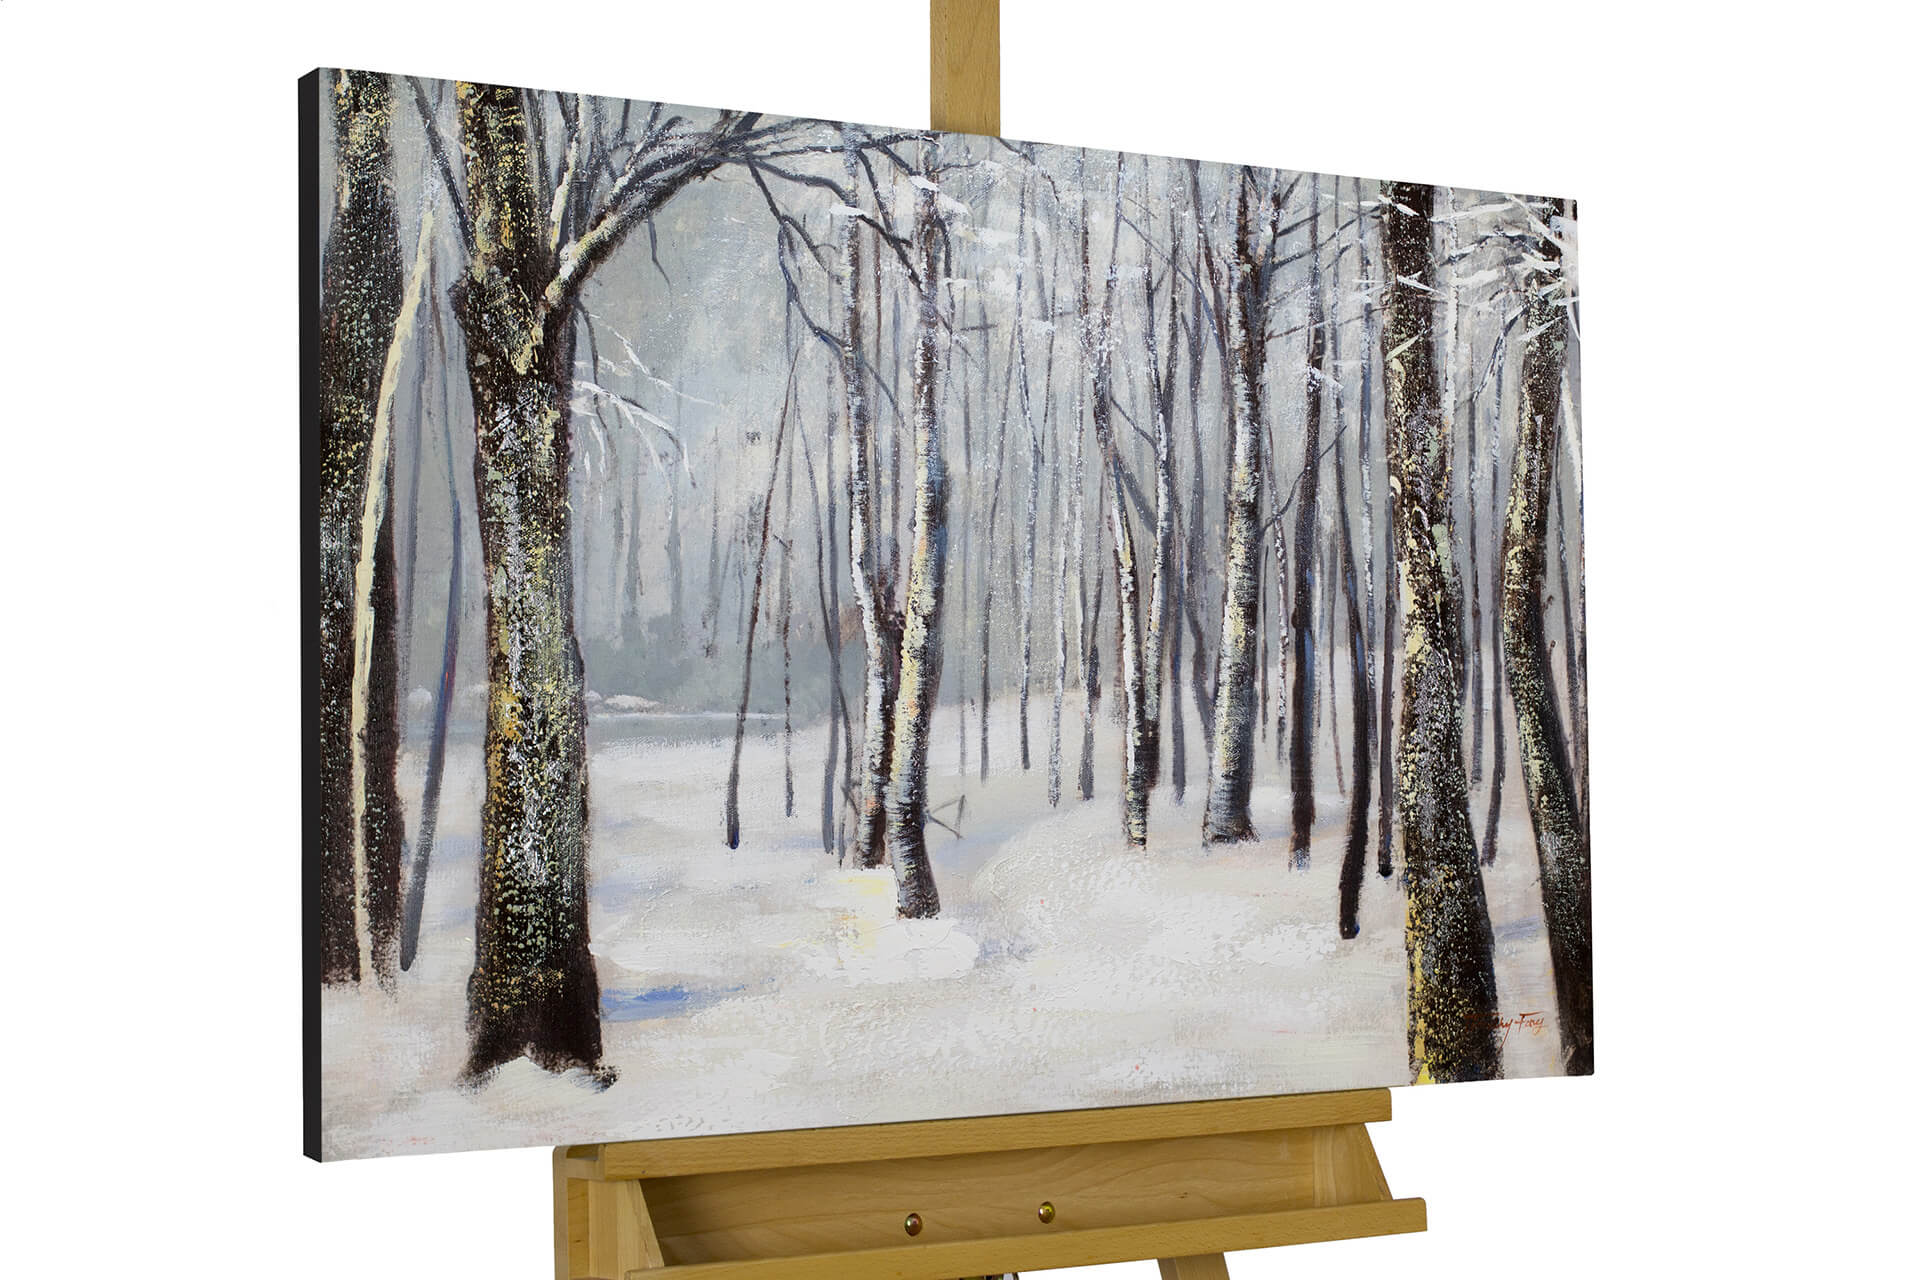 Leinwand Wald Acryl Gemälde Traces In The Snow 90x60cm